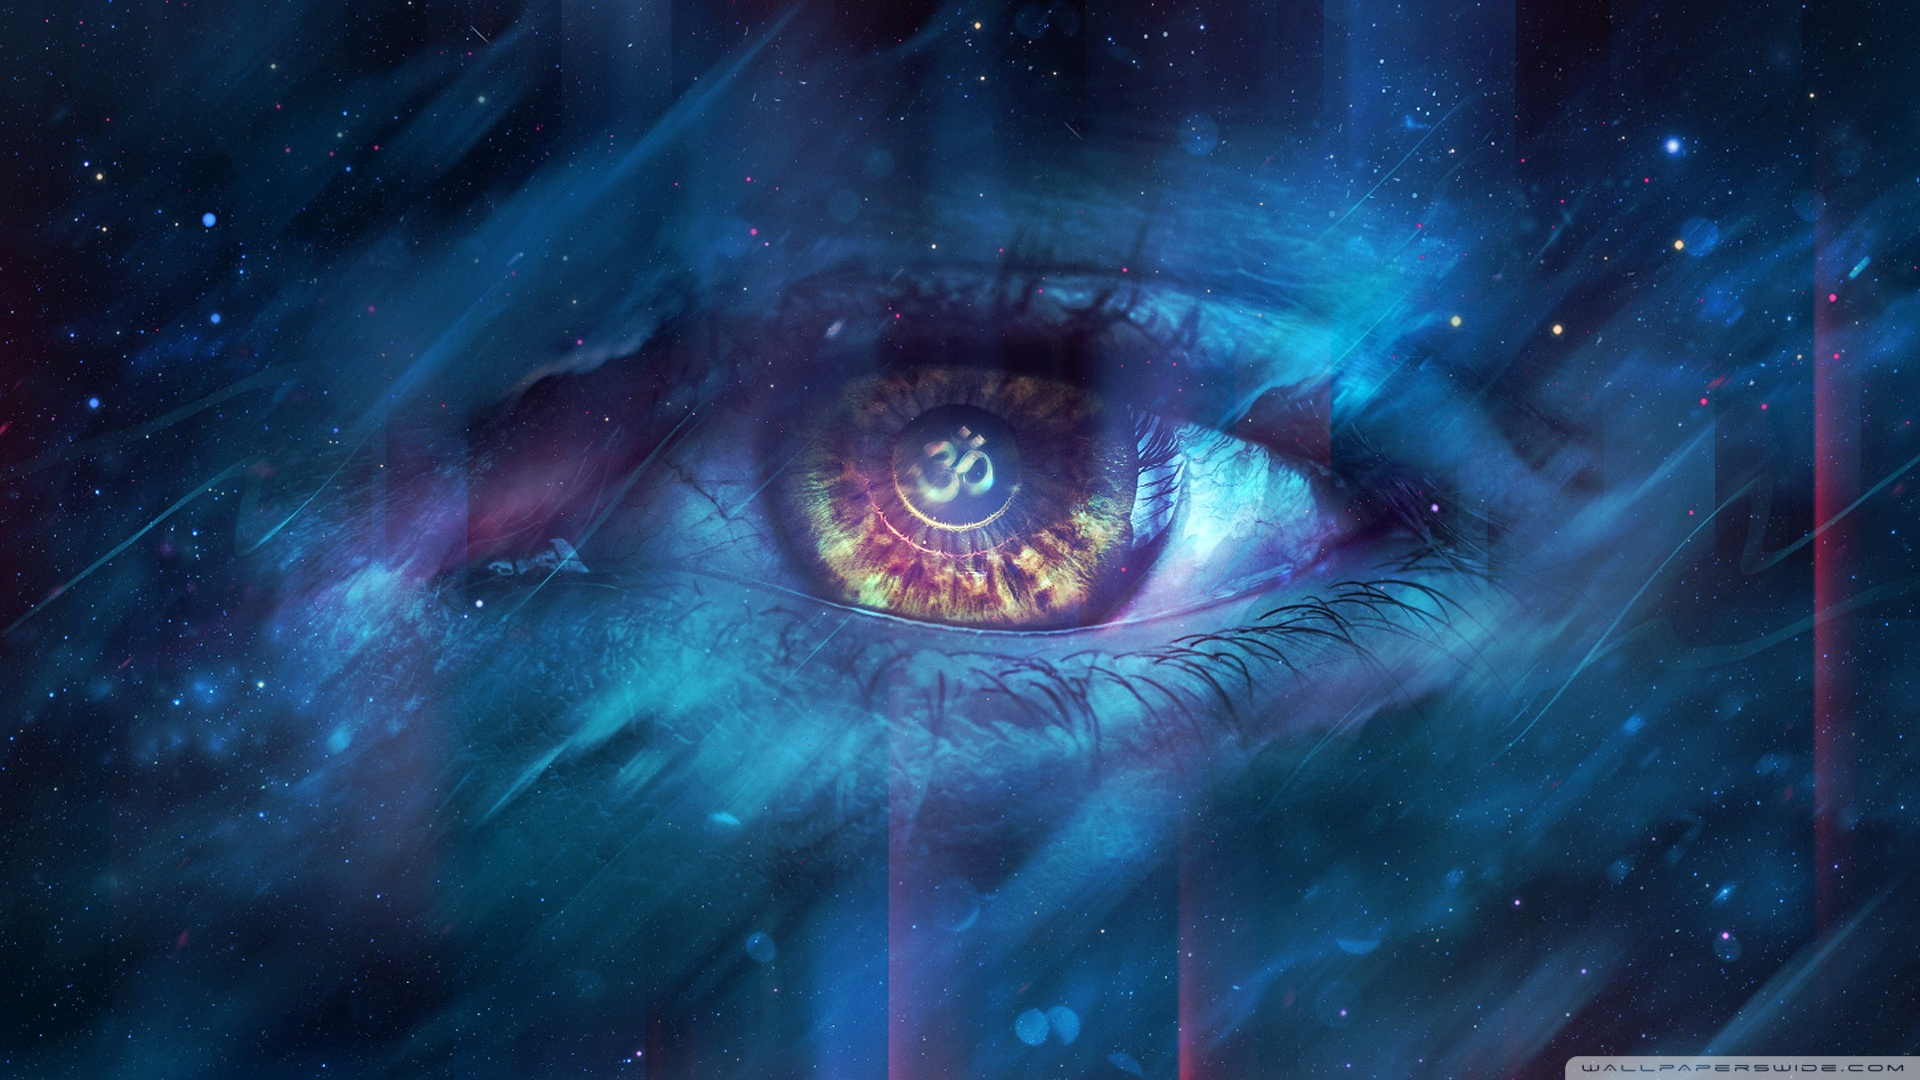 Eyes Wallpaper Hd Posted By Michelle Mercado